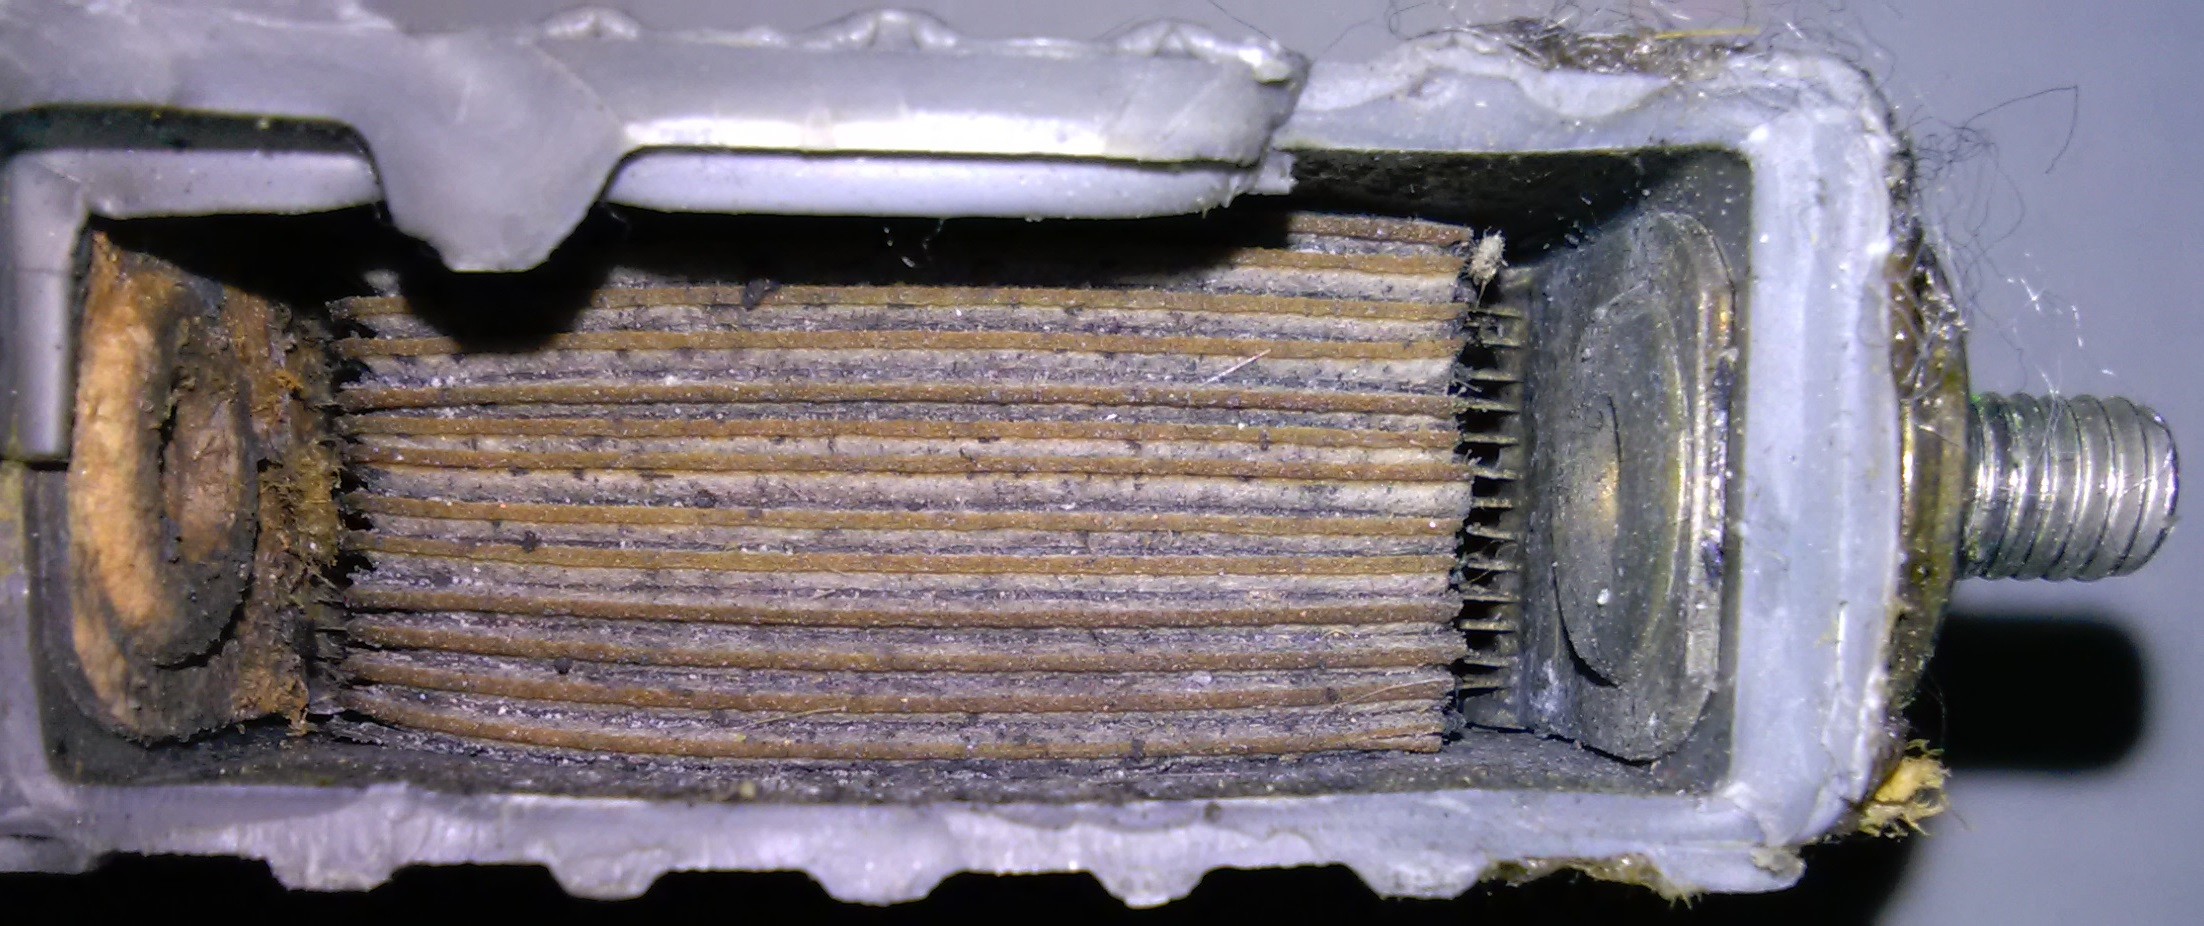 The Top Exploded Off This Battery And Is Ragged On Left Side Solid Vertical Lines Mark Divisions Between Each Cell